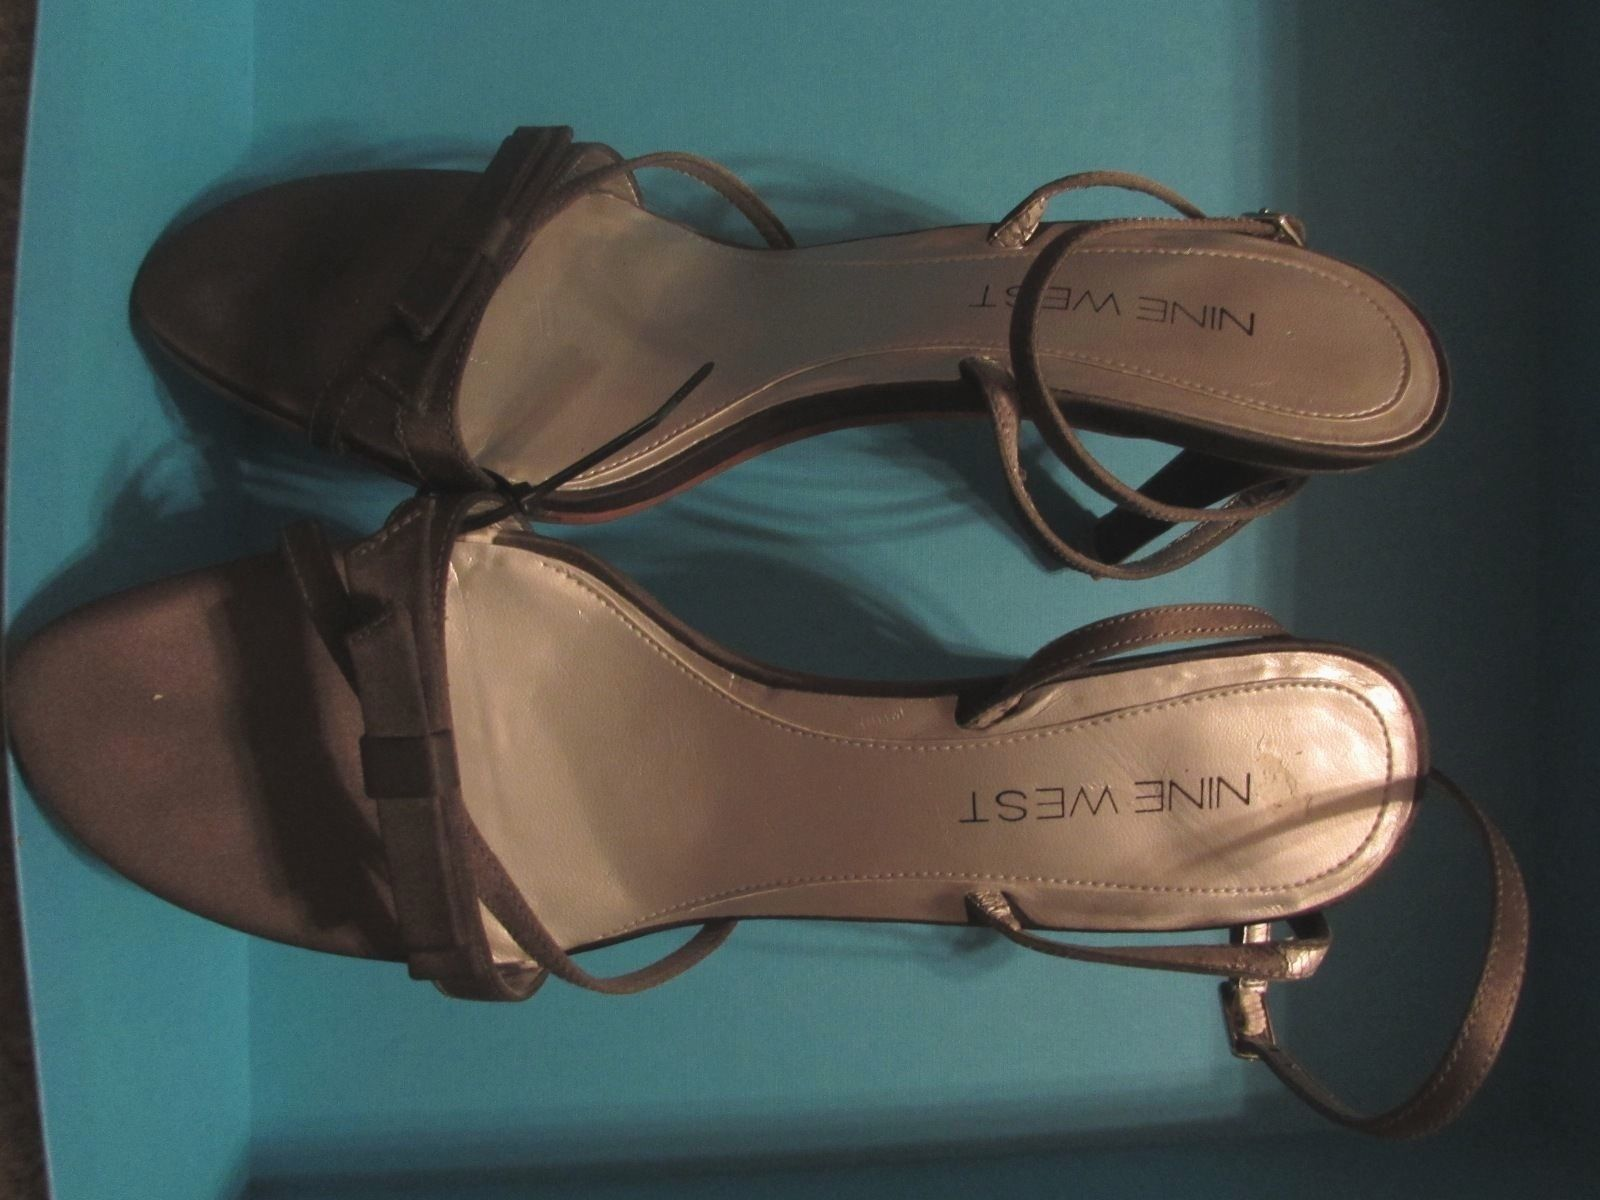 Nine West Sweetheart Satin Strappy Brown Fabric Sandals Women's Size 8.5 M